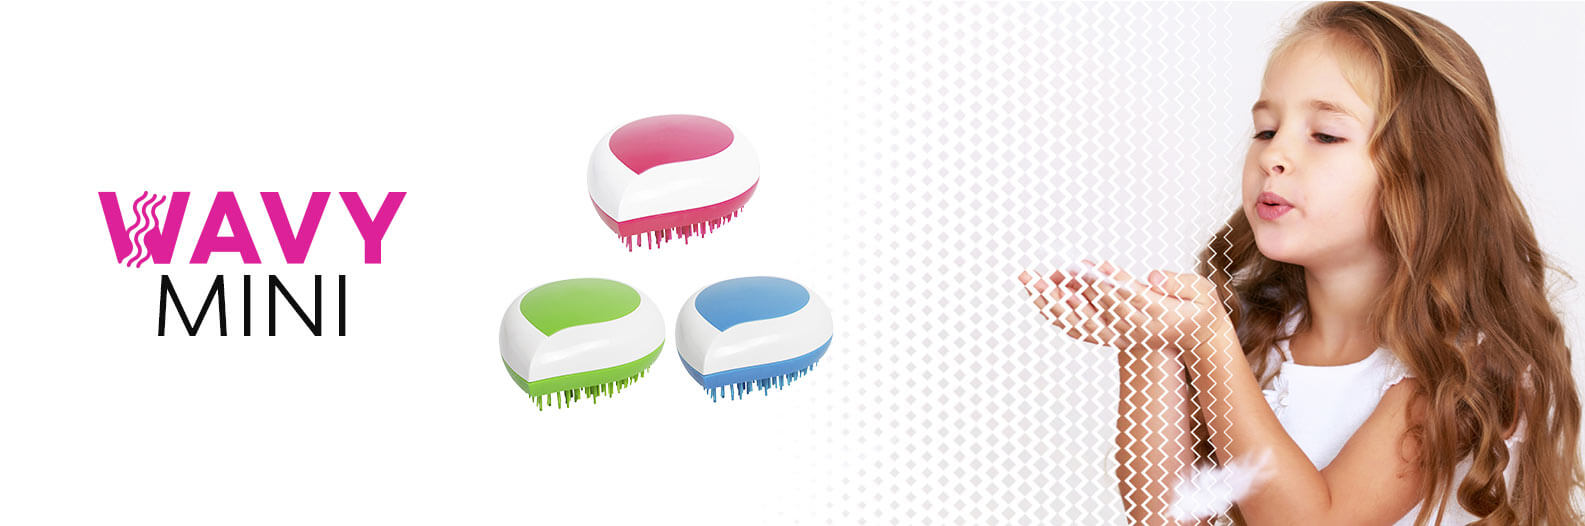 wavy brush mini - cepillo desenredante